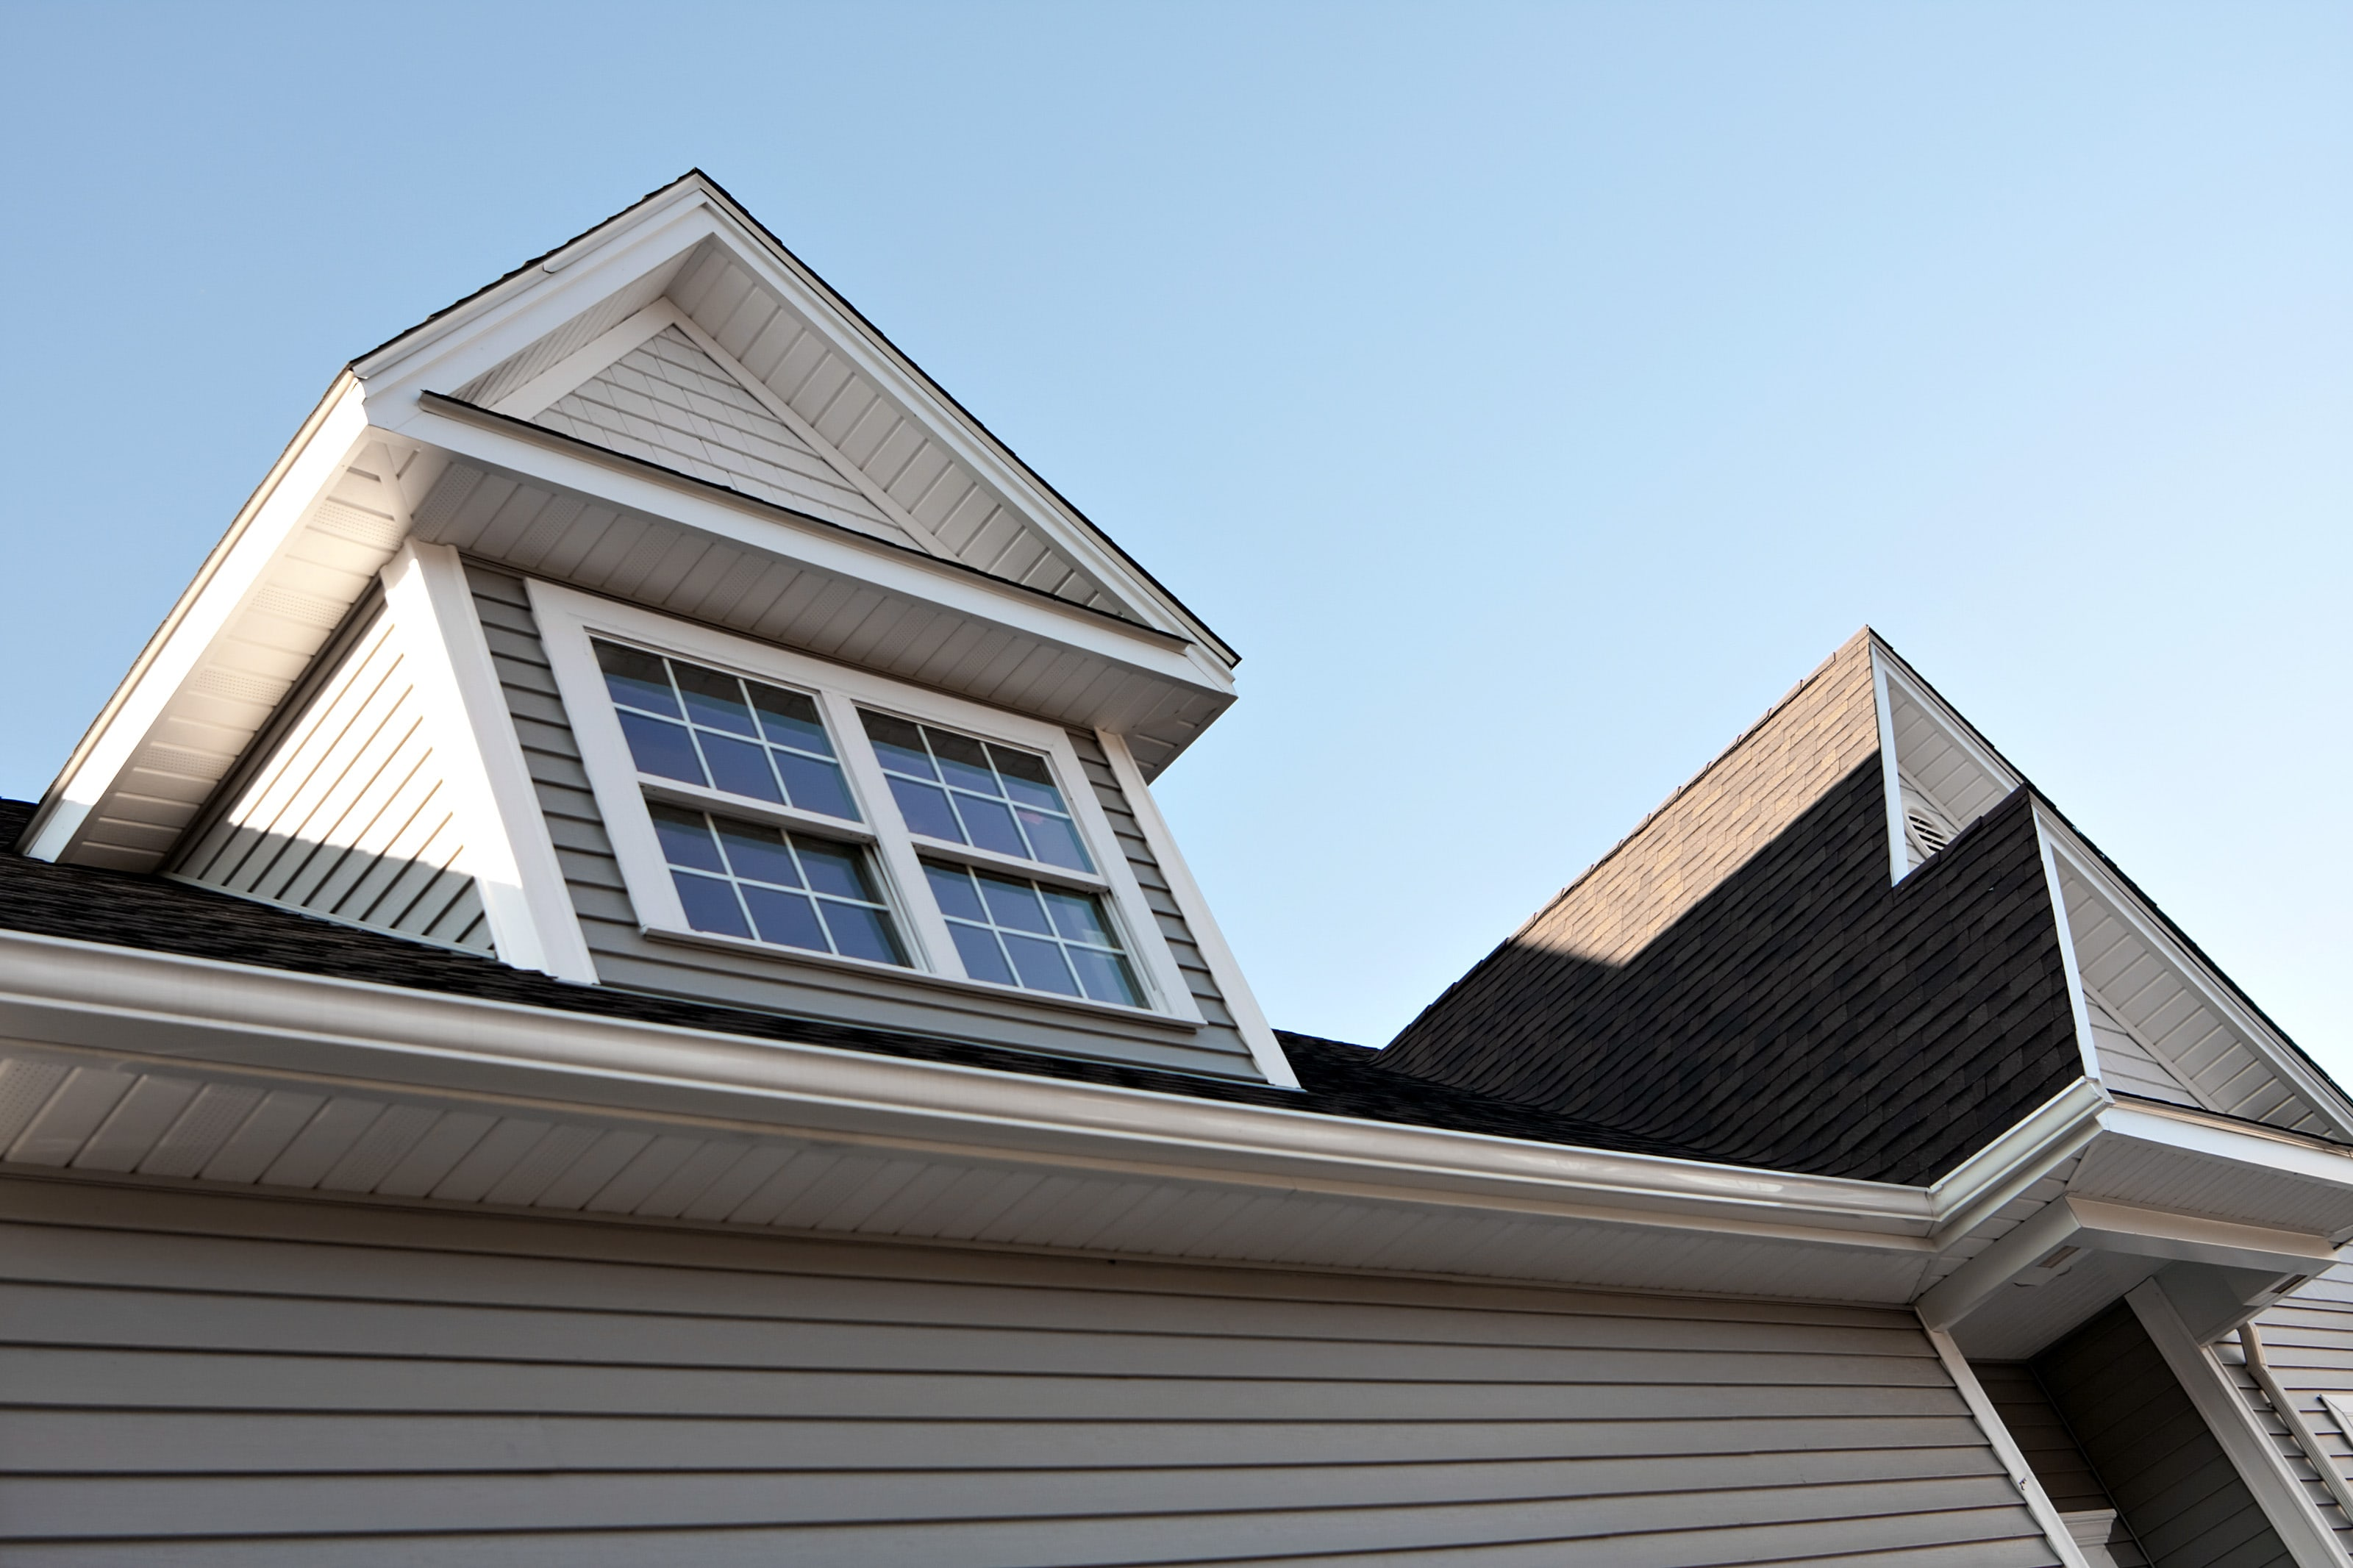 Gutter Cleaning New Jersey